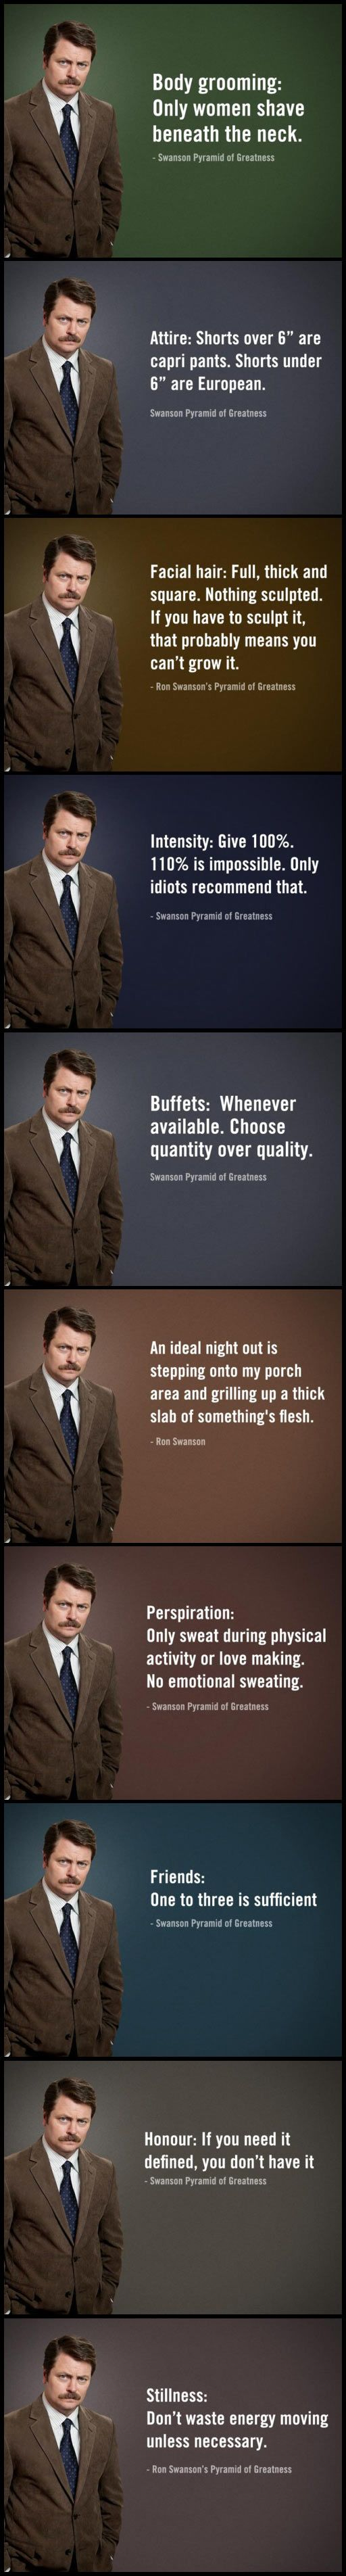 Some wise words from Ron Swanson…